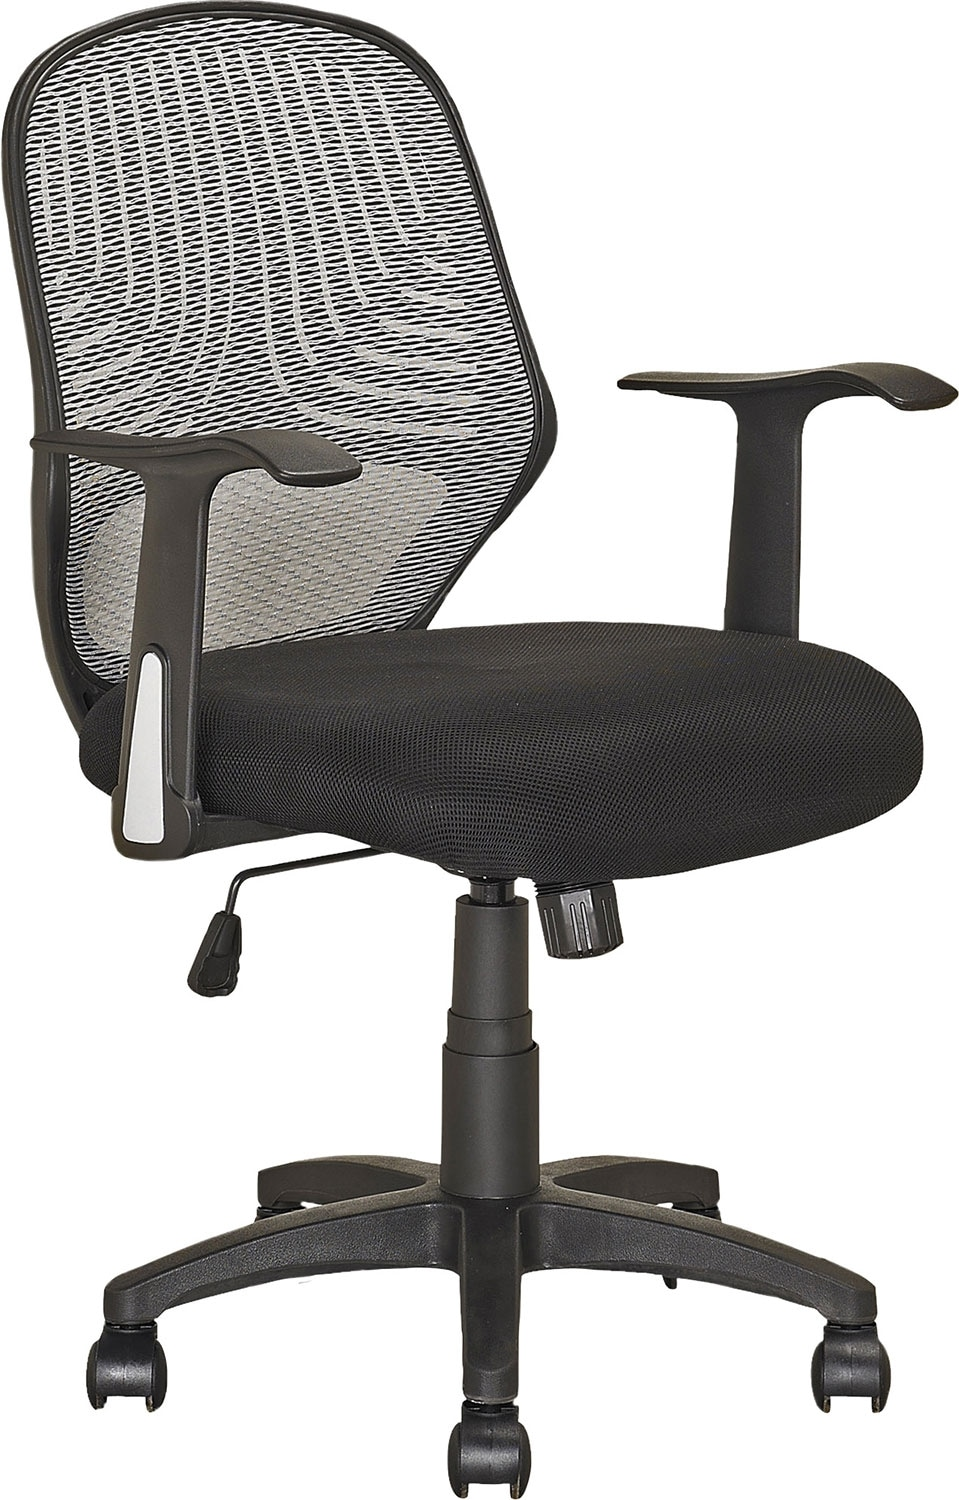 Dallas Soft Fabric Office Chair with Back Support